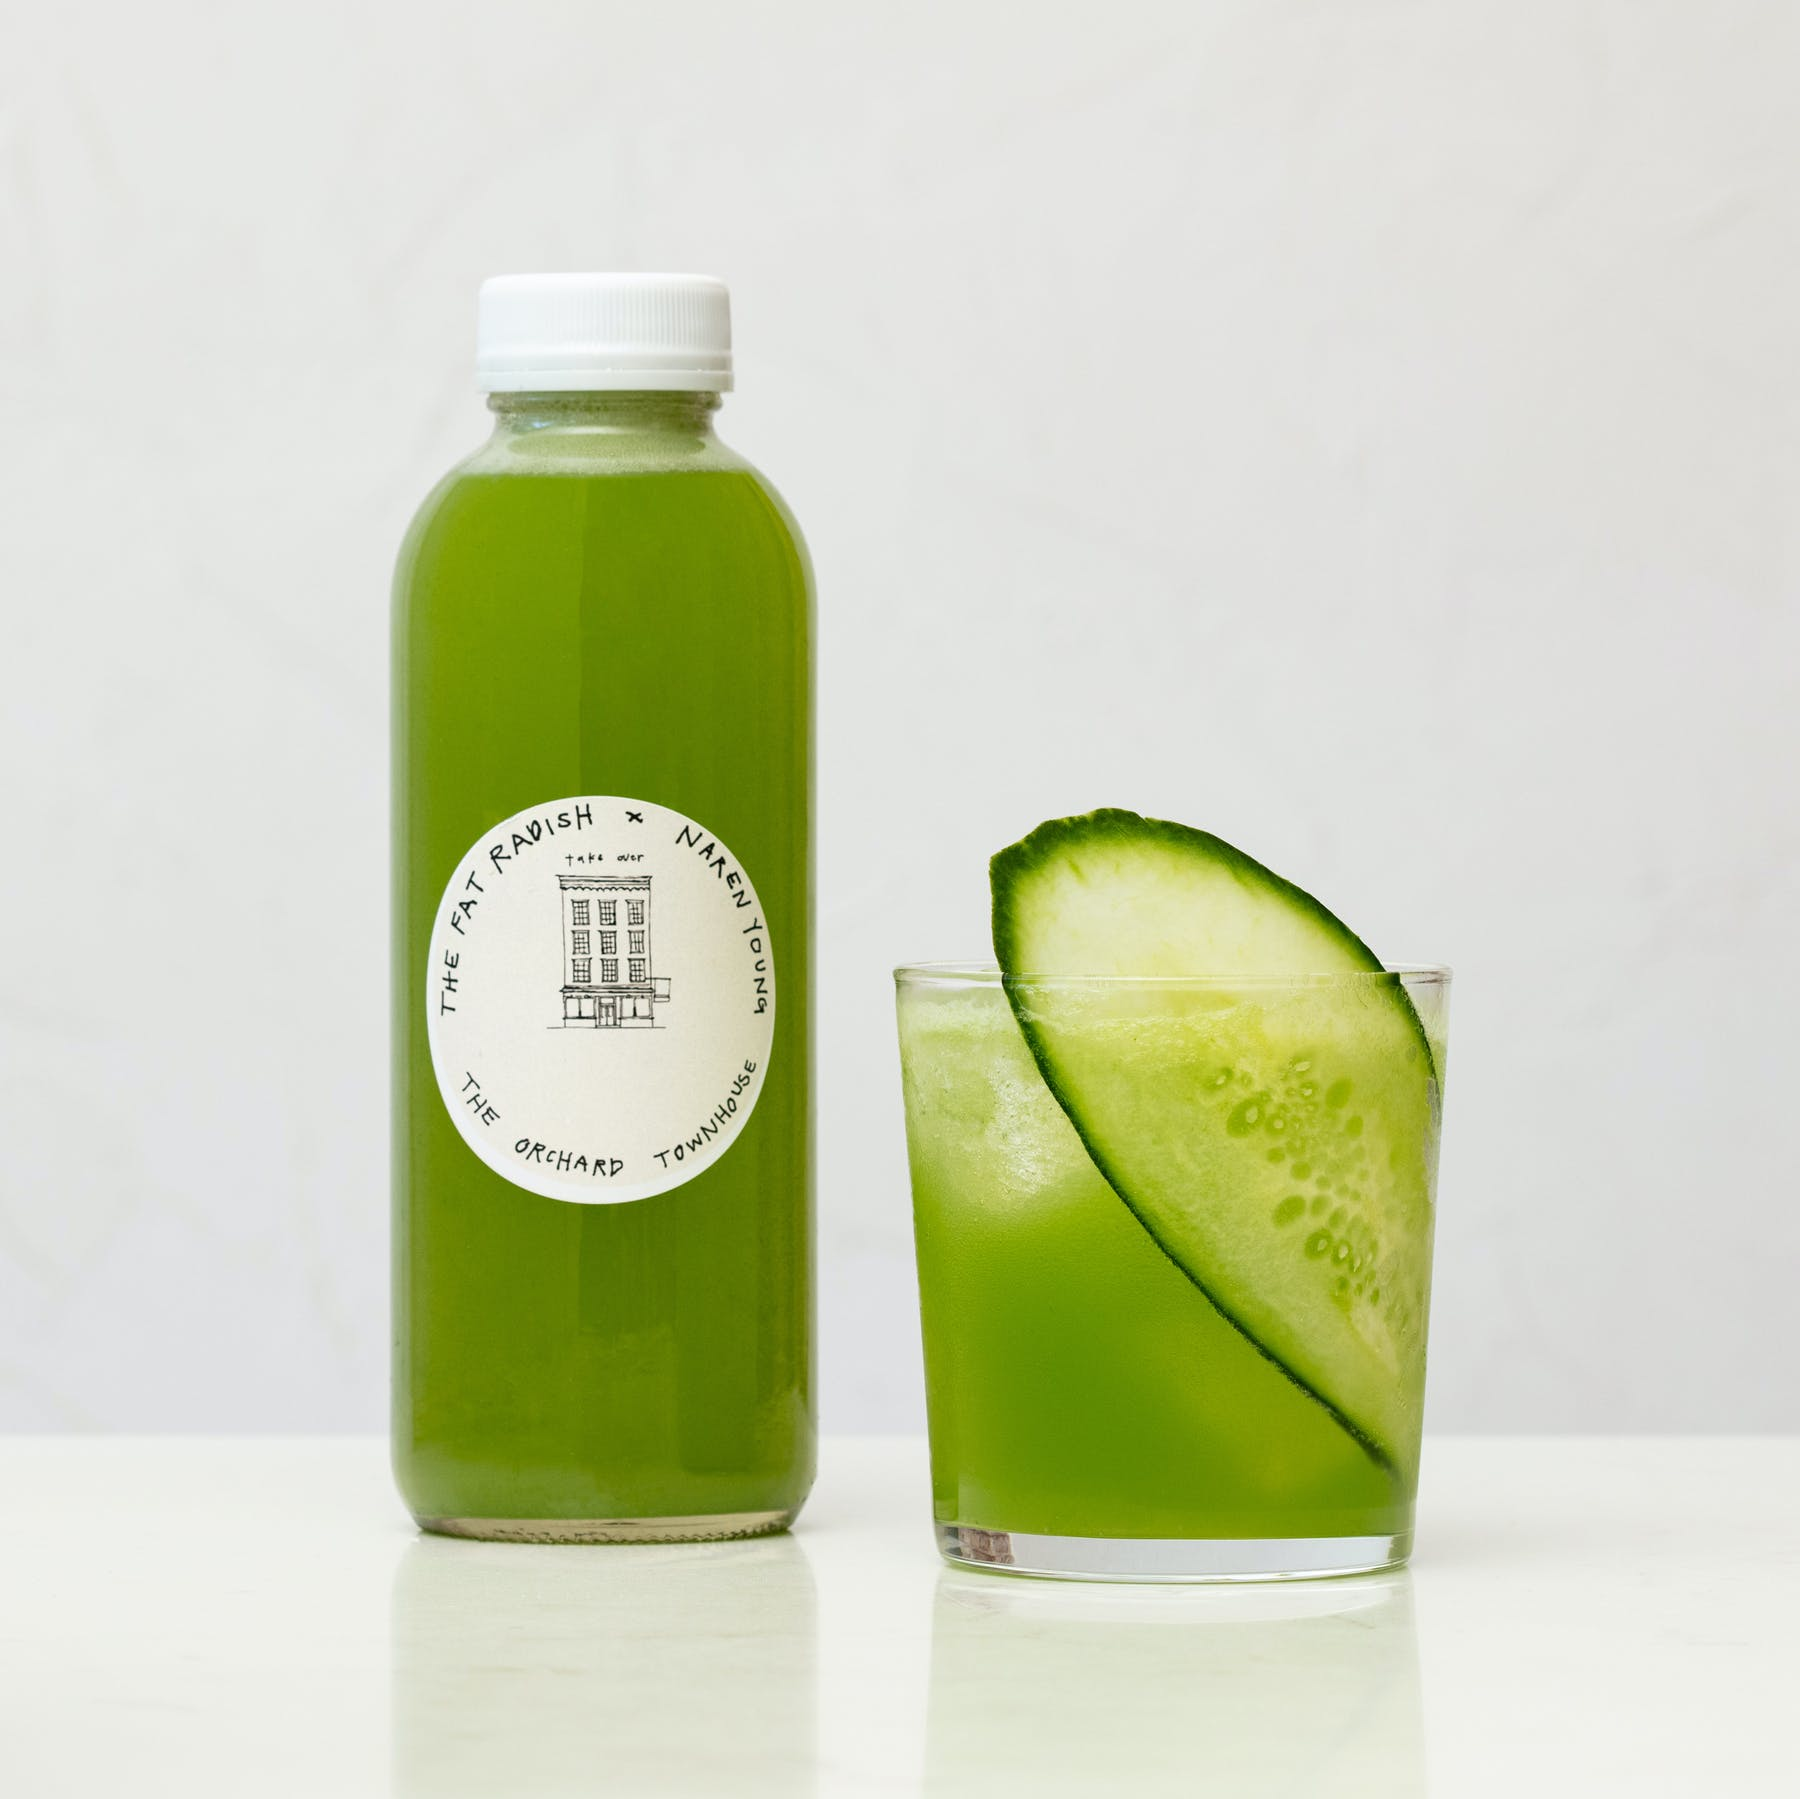 a green bottle on a table